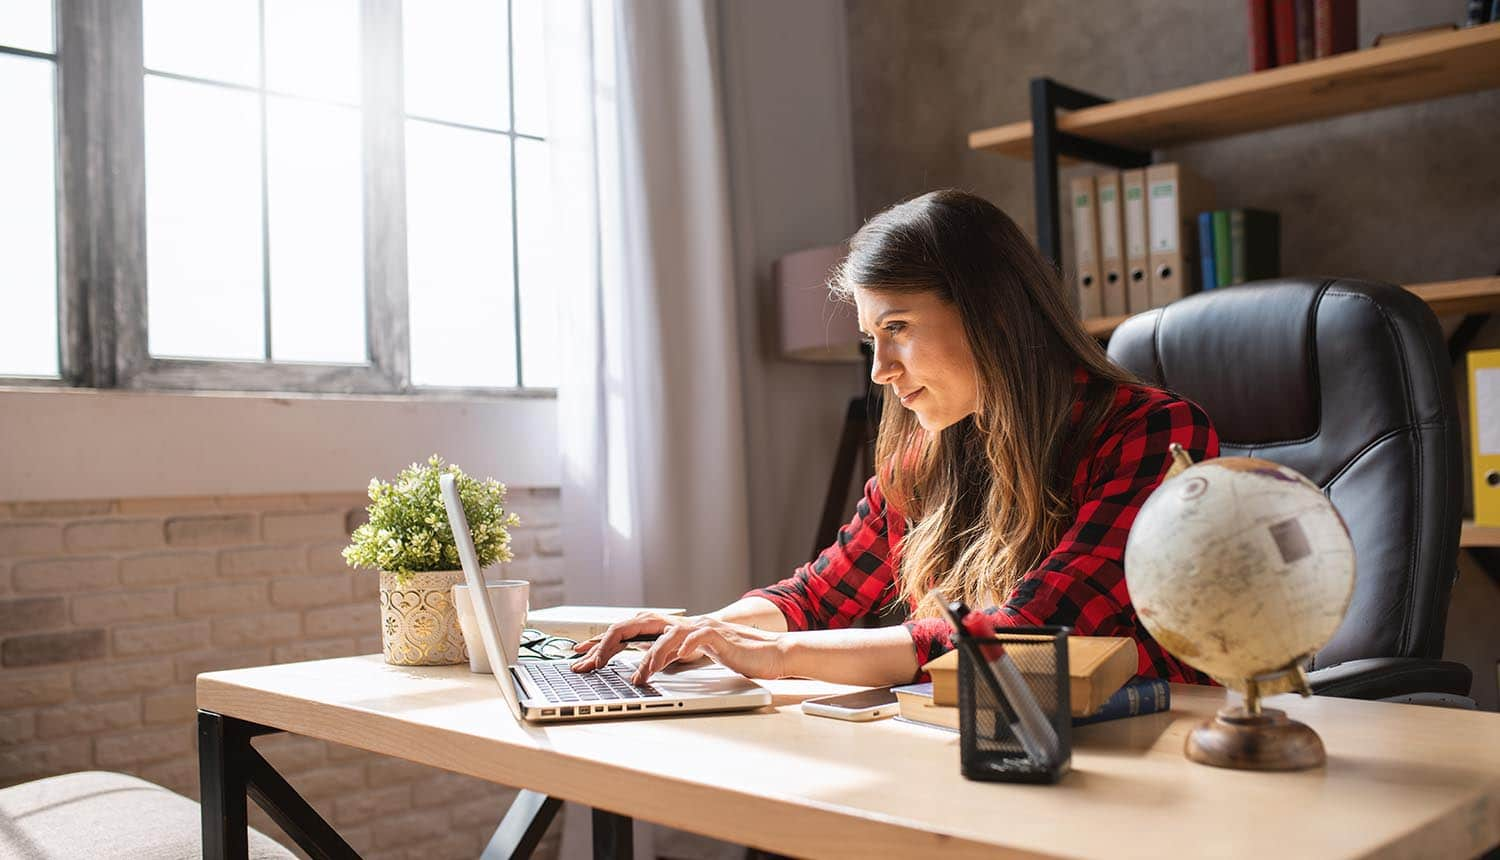 Girl teleworker works at home with a laptop using video conferencing platform